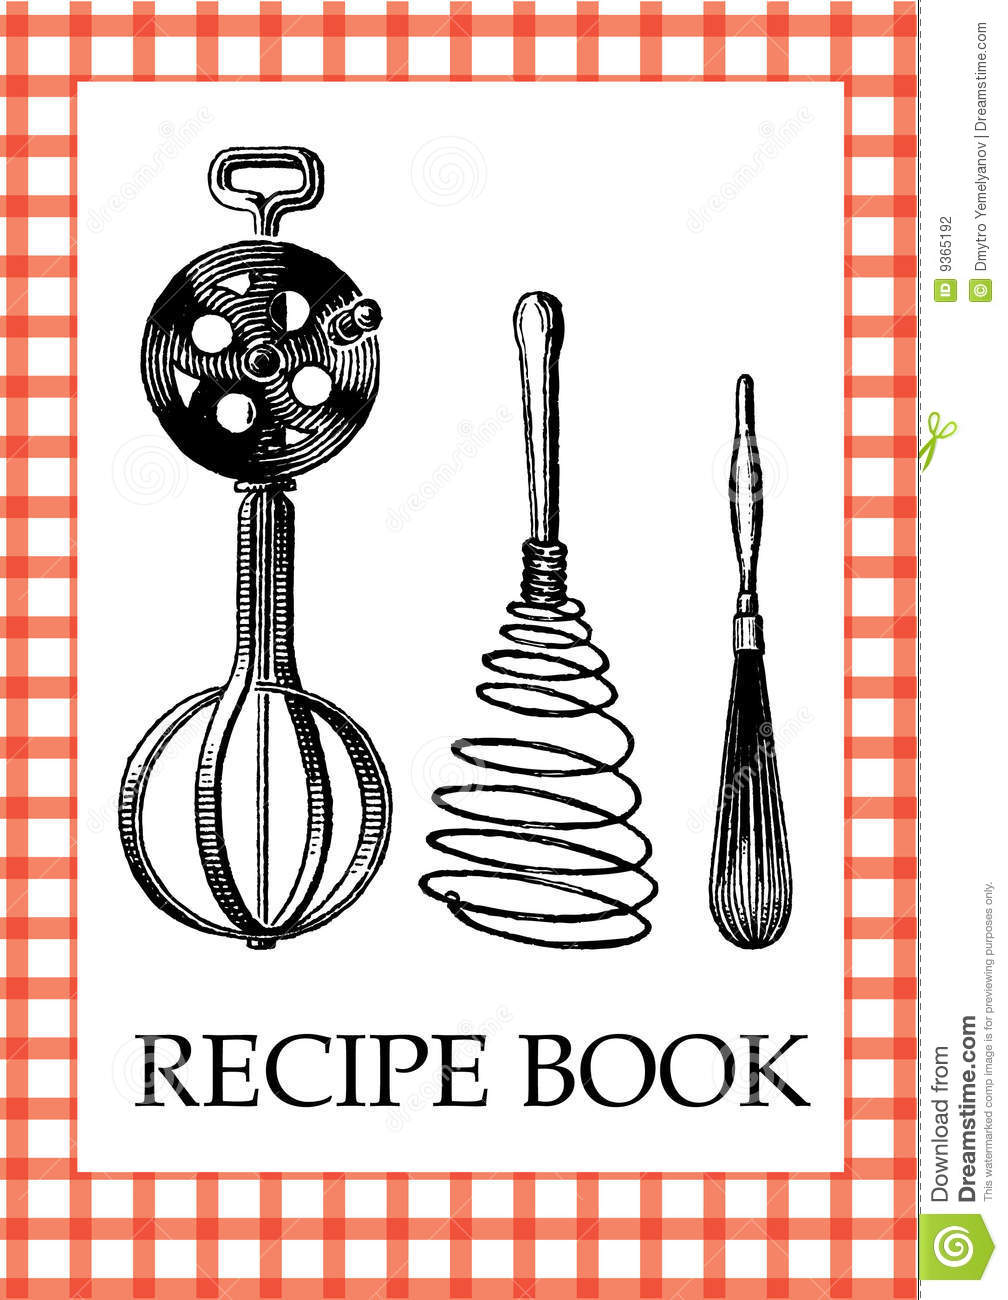 Cookbook Cover Clipart - Clipart Kid